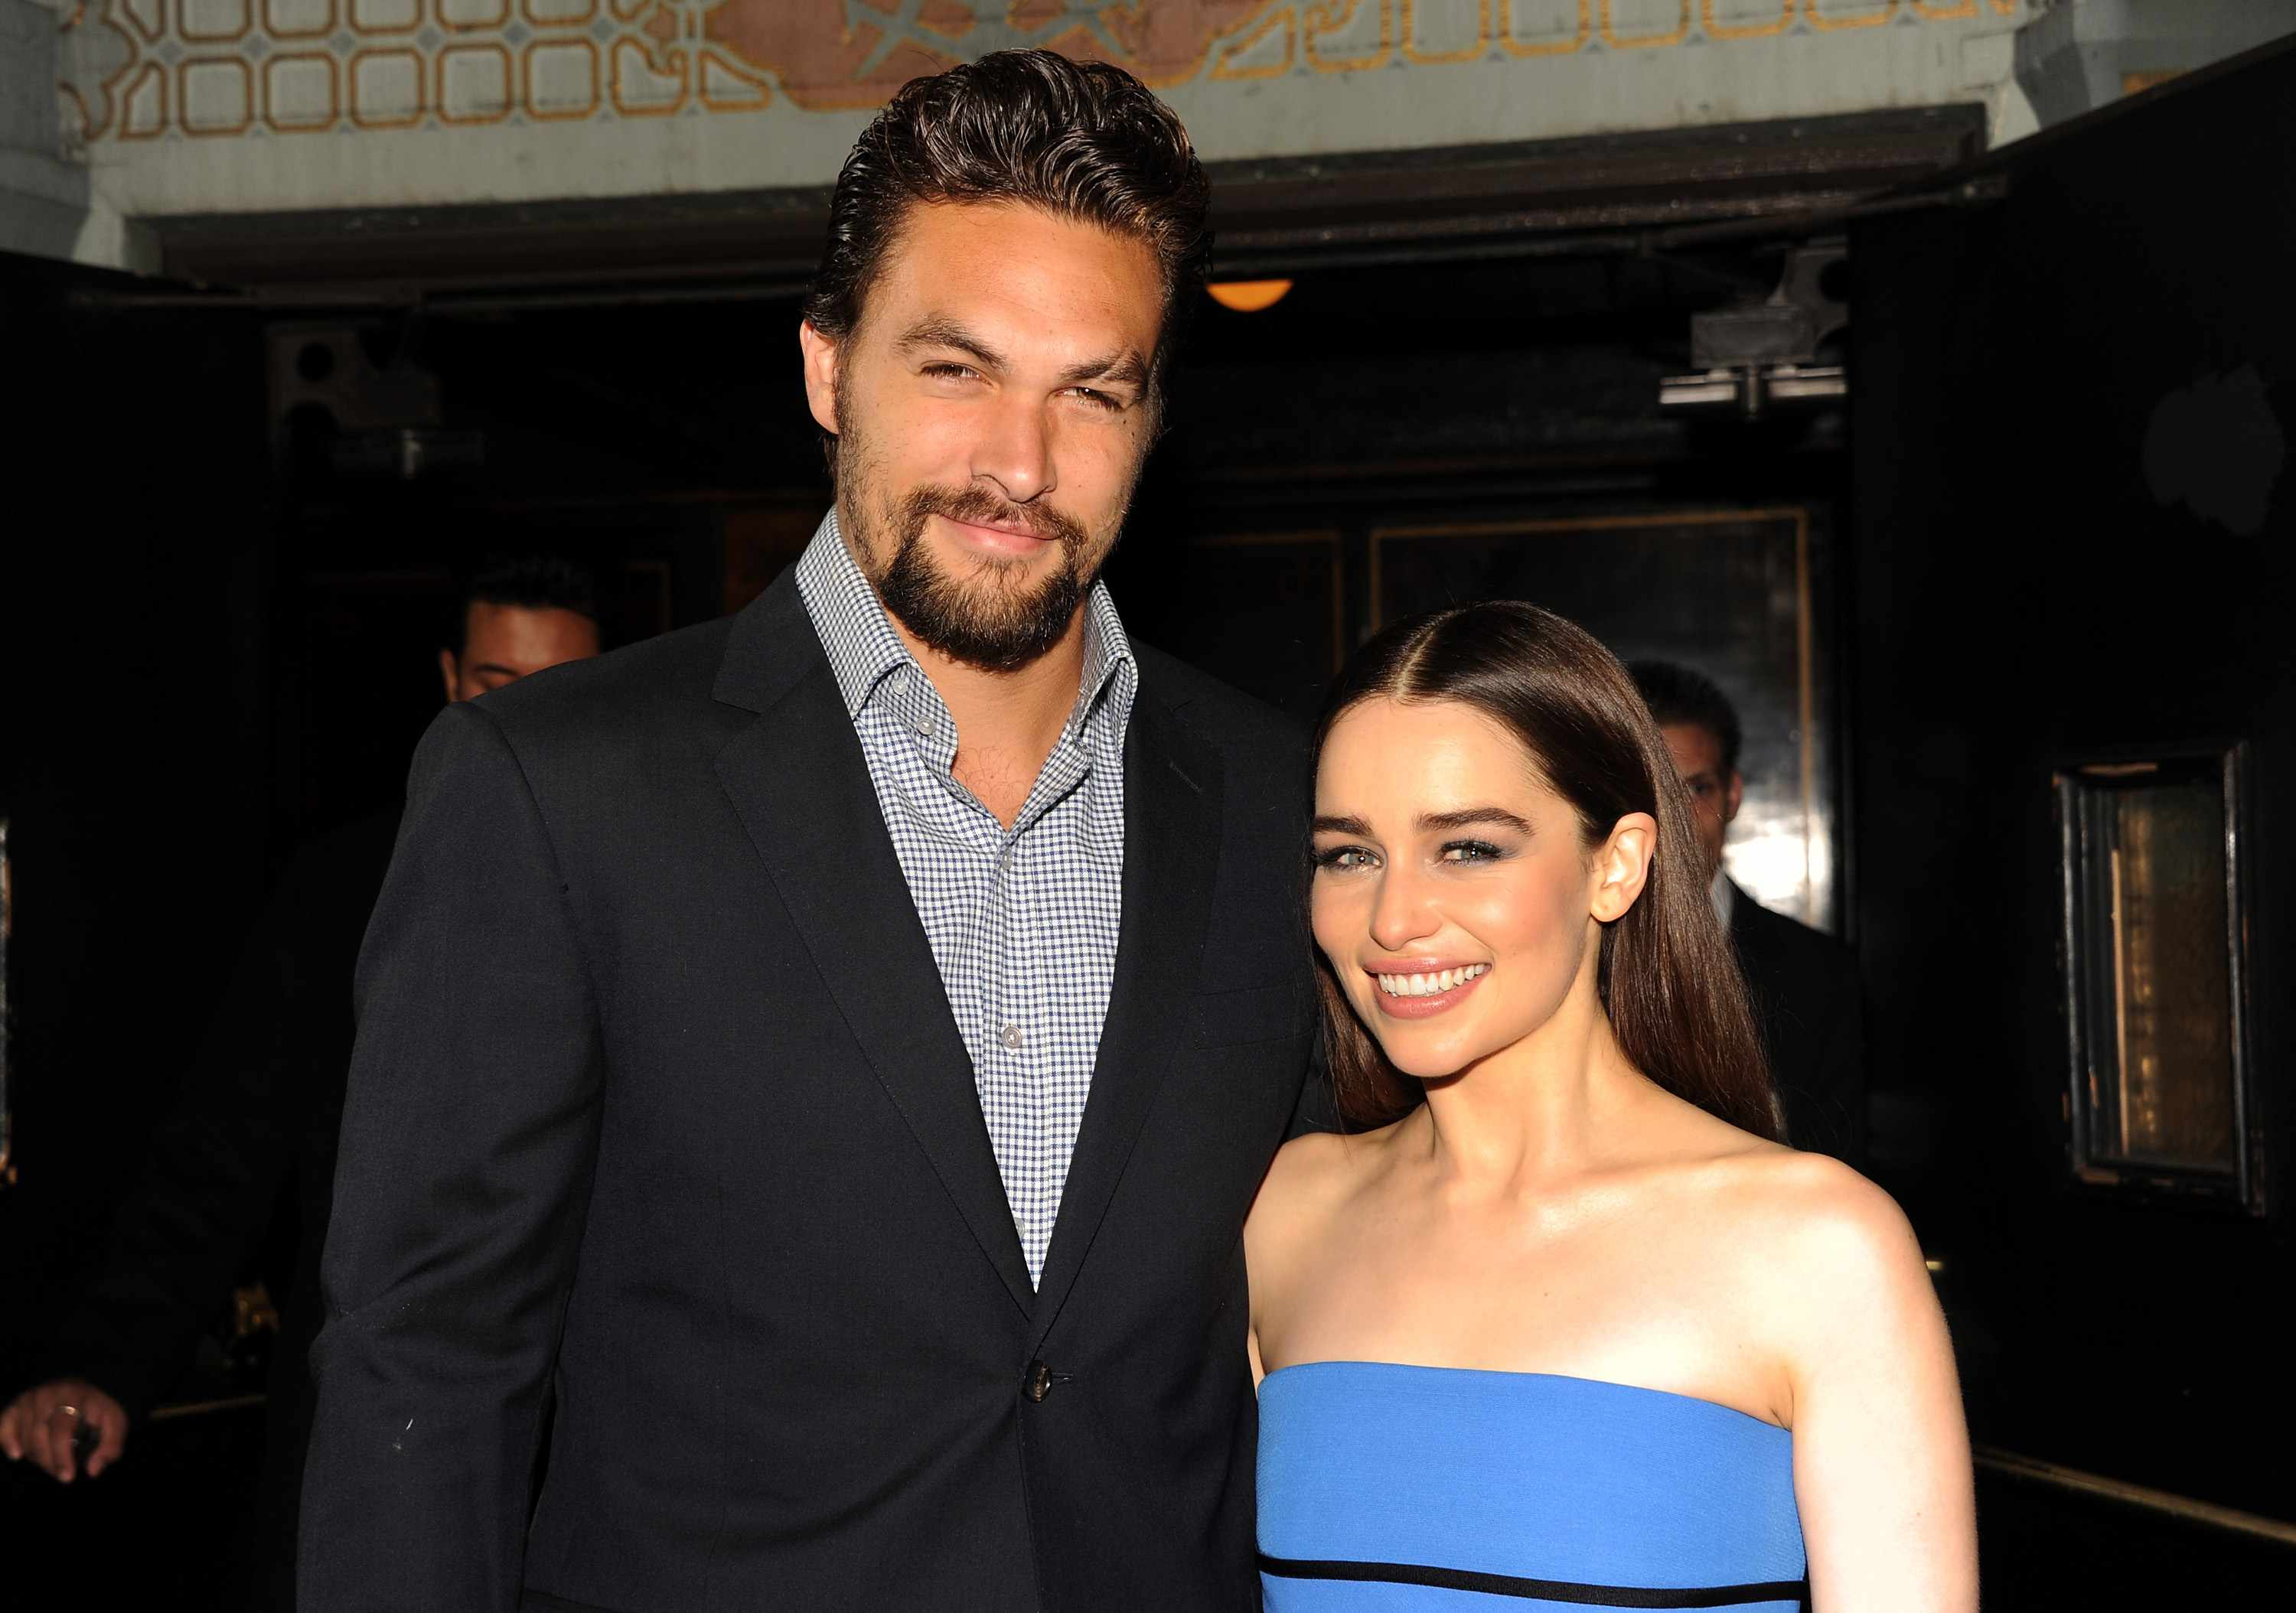 """HOLLYWOOD, CA - MARCH 18:  Actors Jason Momoa (L) and Emilia Clarke arrive at the premiere of HBO's """"Game Of Thrones"""" Season 3 at TCL Chinese Theatre on March 18, 2013 in Hollywood, California.  (Photo by Kevin Winter/Getty Images, BA)"""